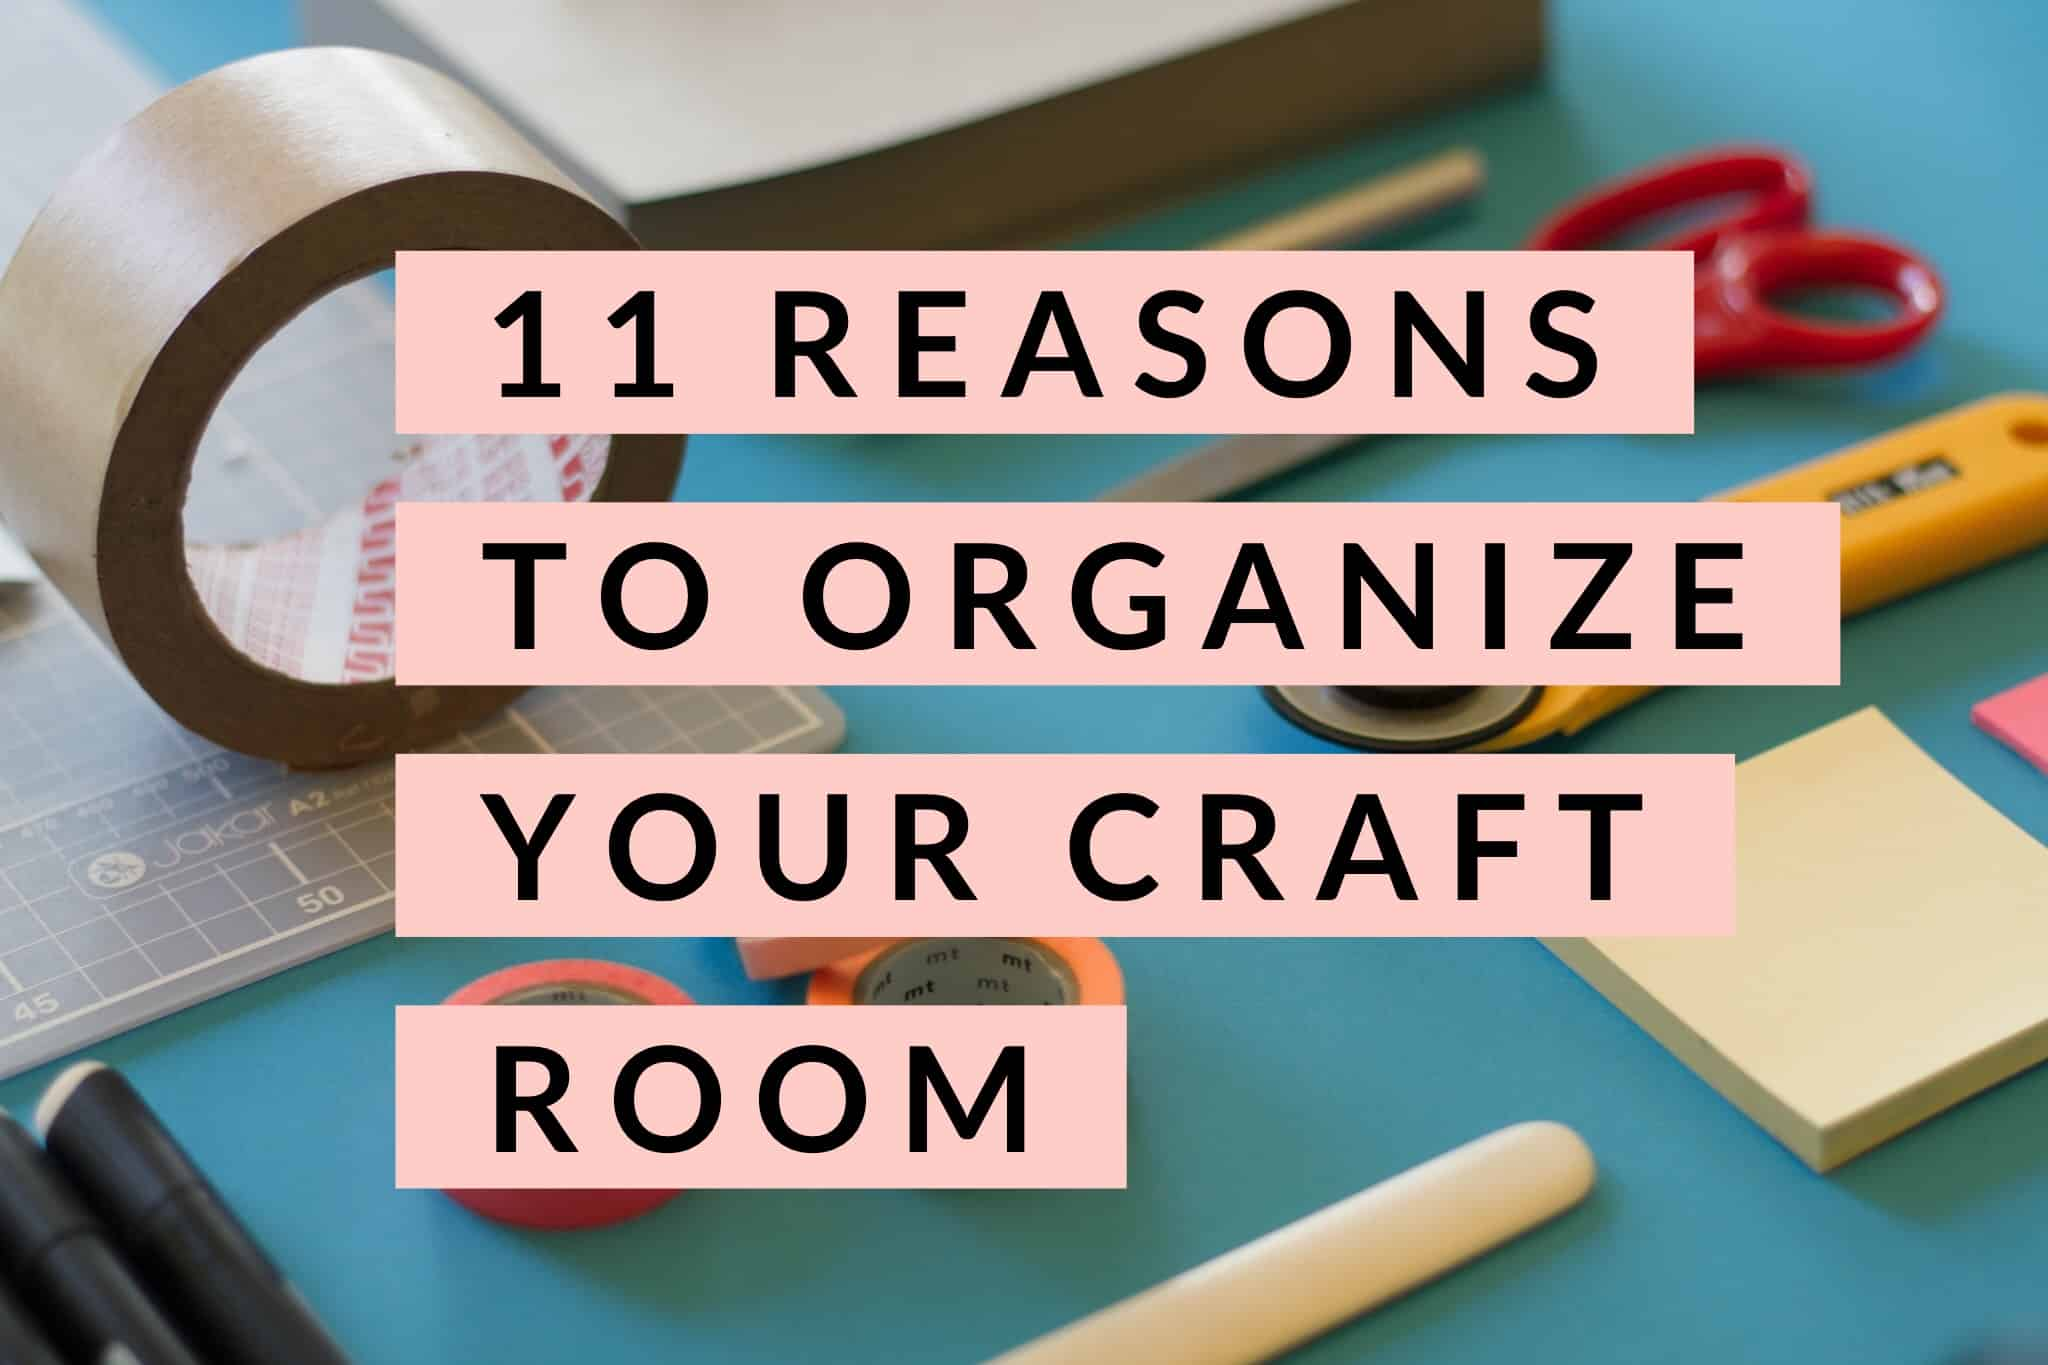 11 Reasons to Organize Your Craft Room